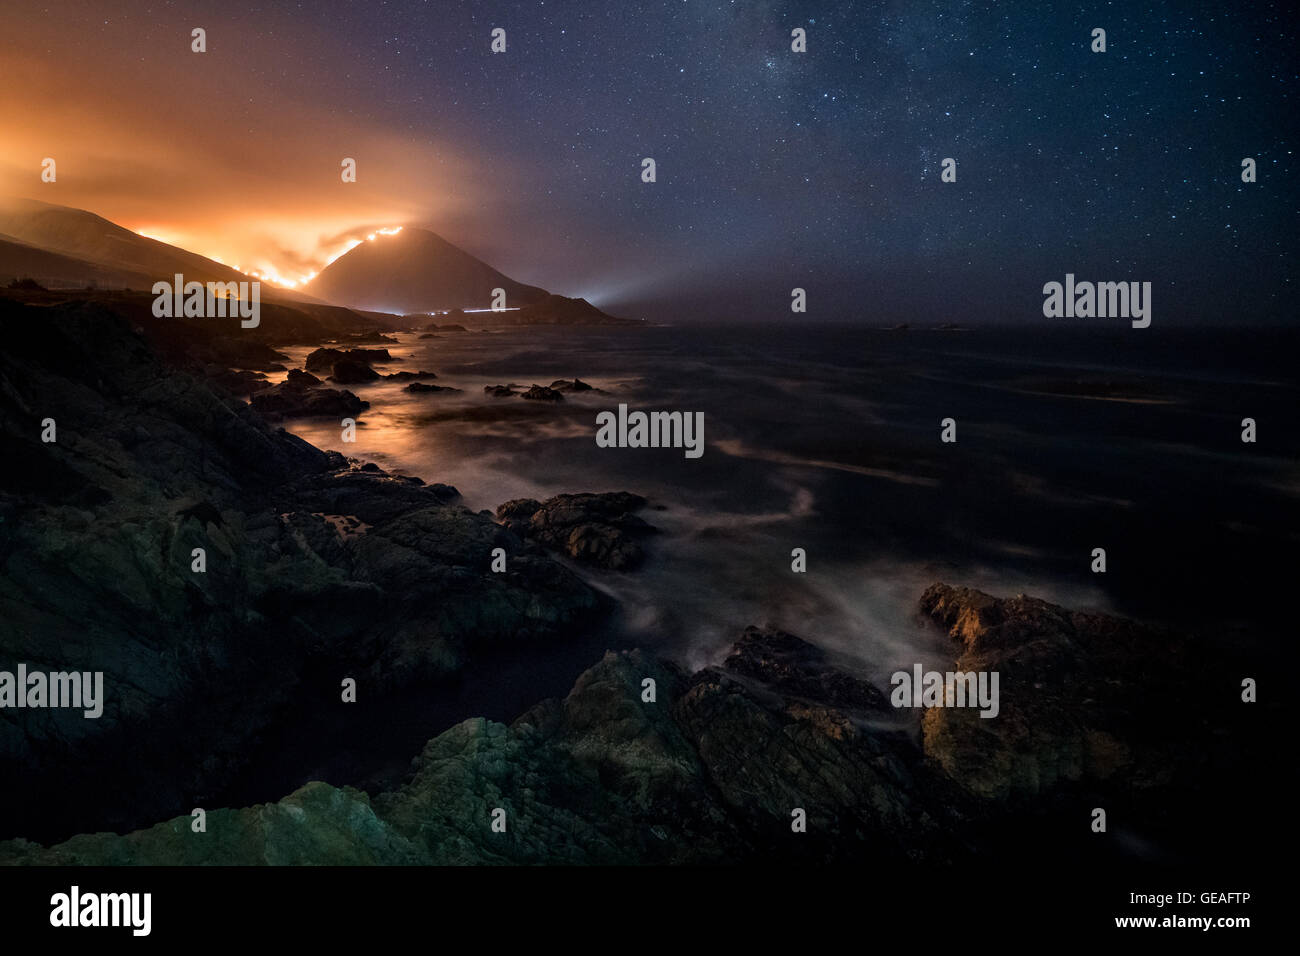 Big Sur, California, USA. 23rd July, 2016. A wildfire is burning out of control at Garrapata State Park which is - Stock Image